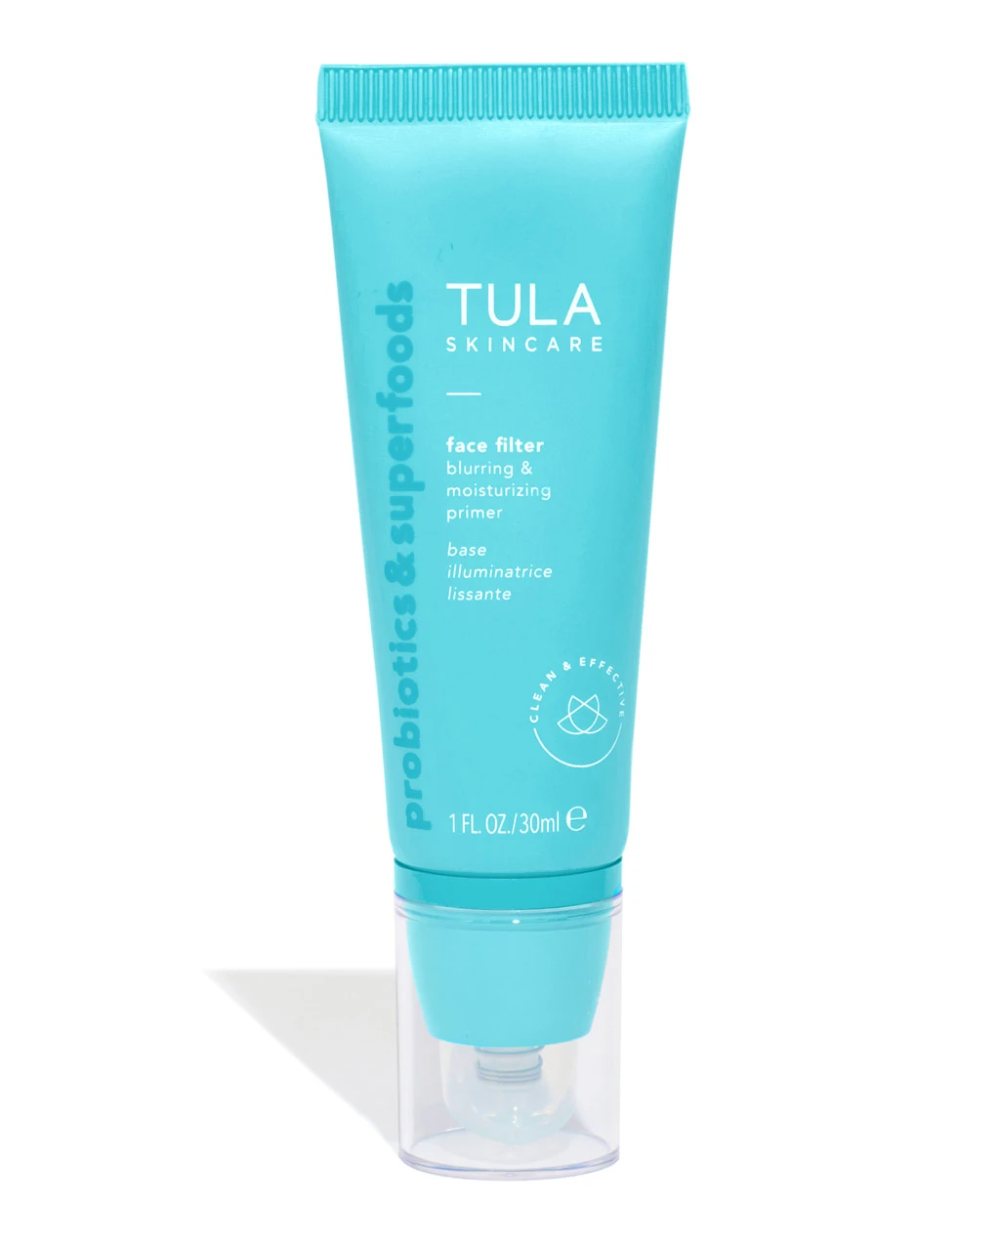 blurring & moisturizing primer in 2020 Tula skincare